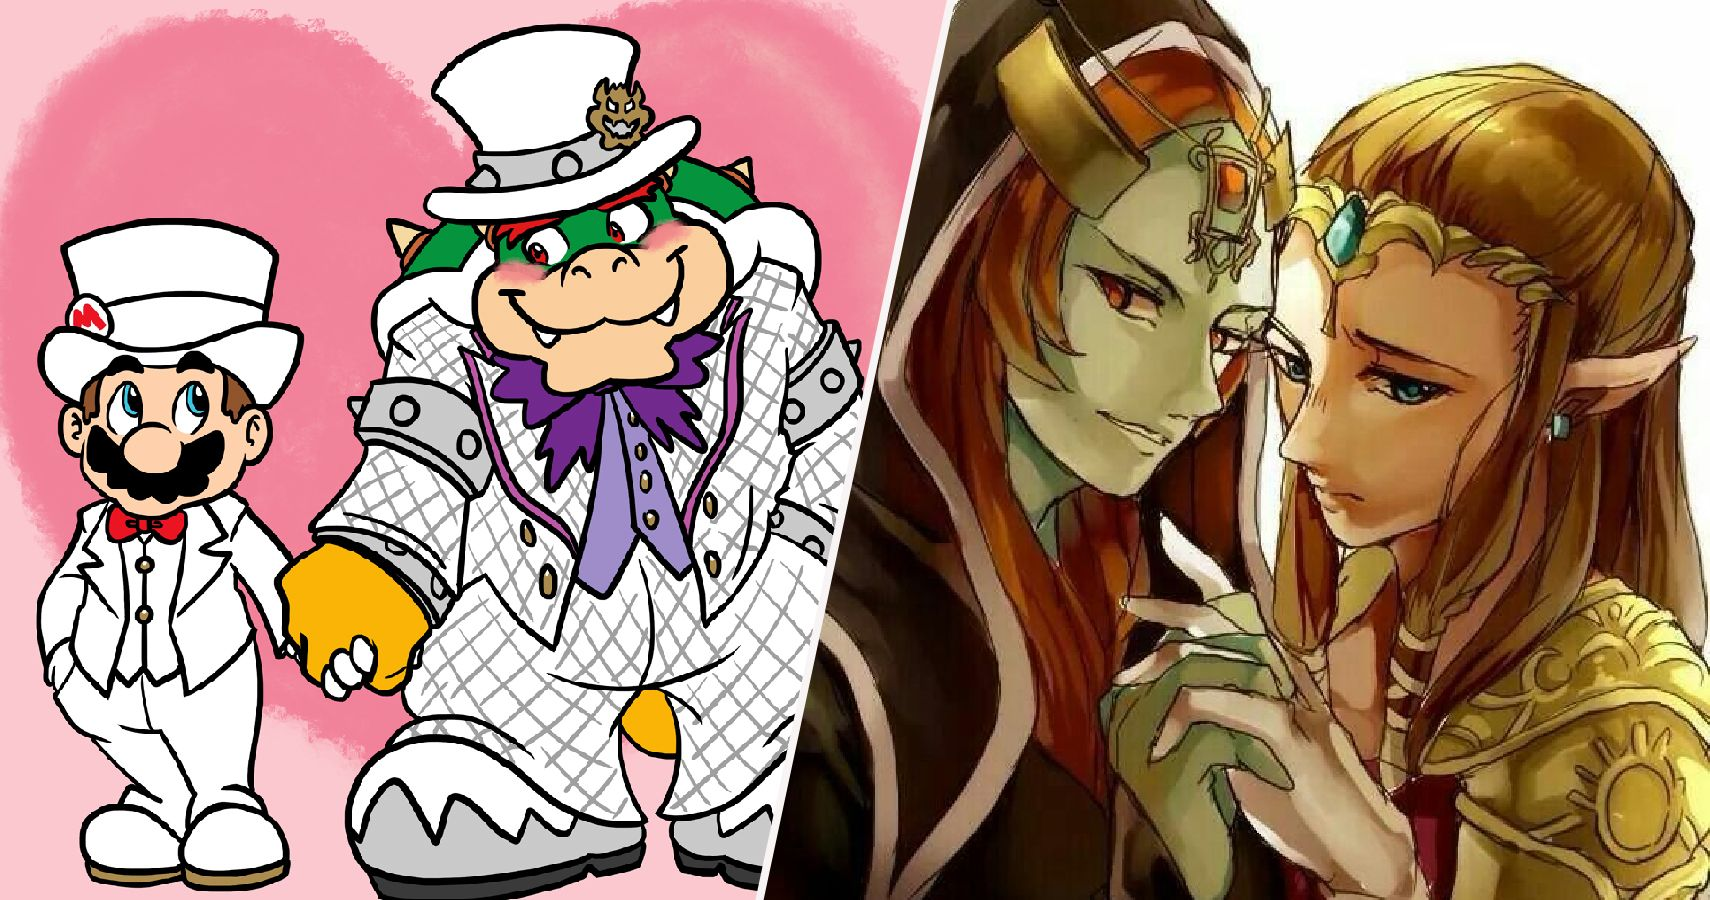 25 Extra Sweet Fan Pictures Of Unexpected Nintendo Couples